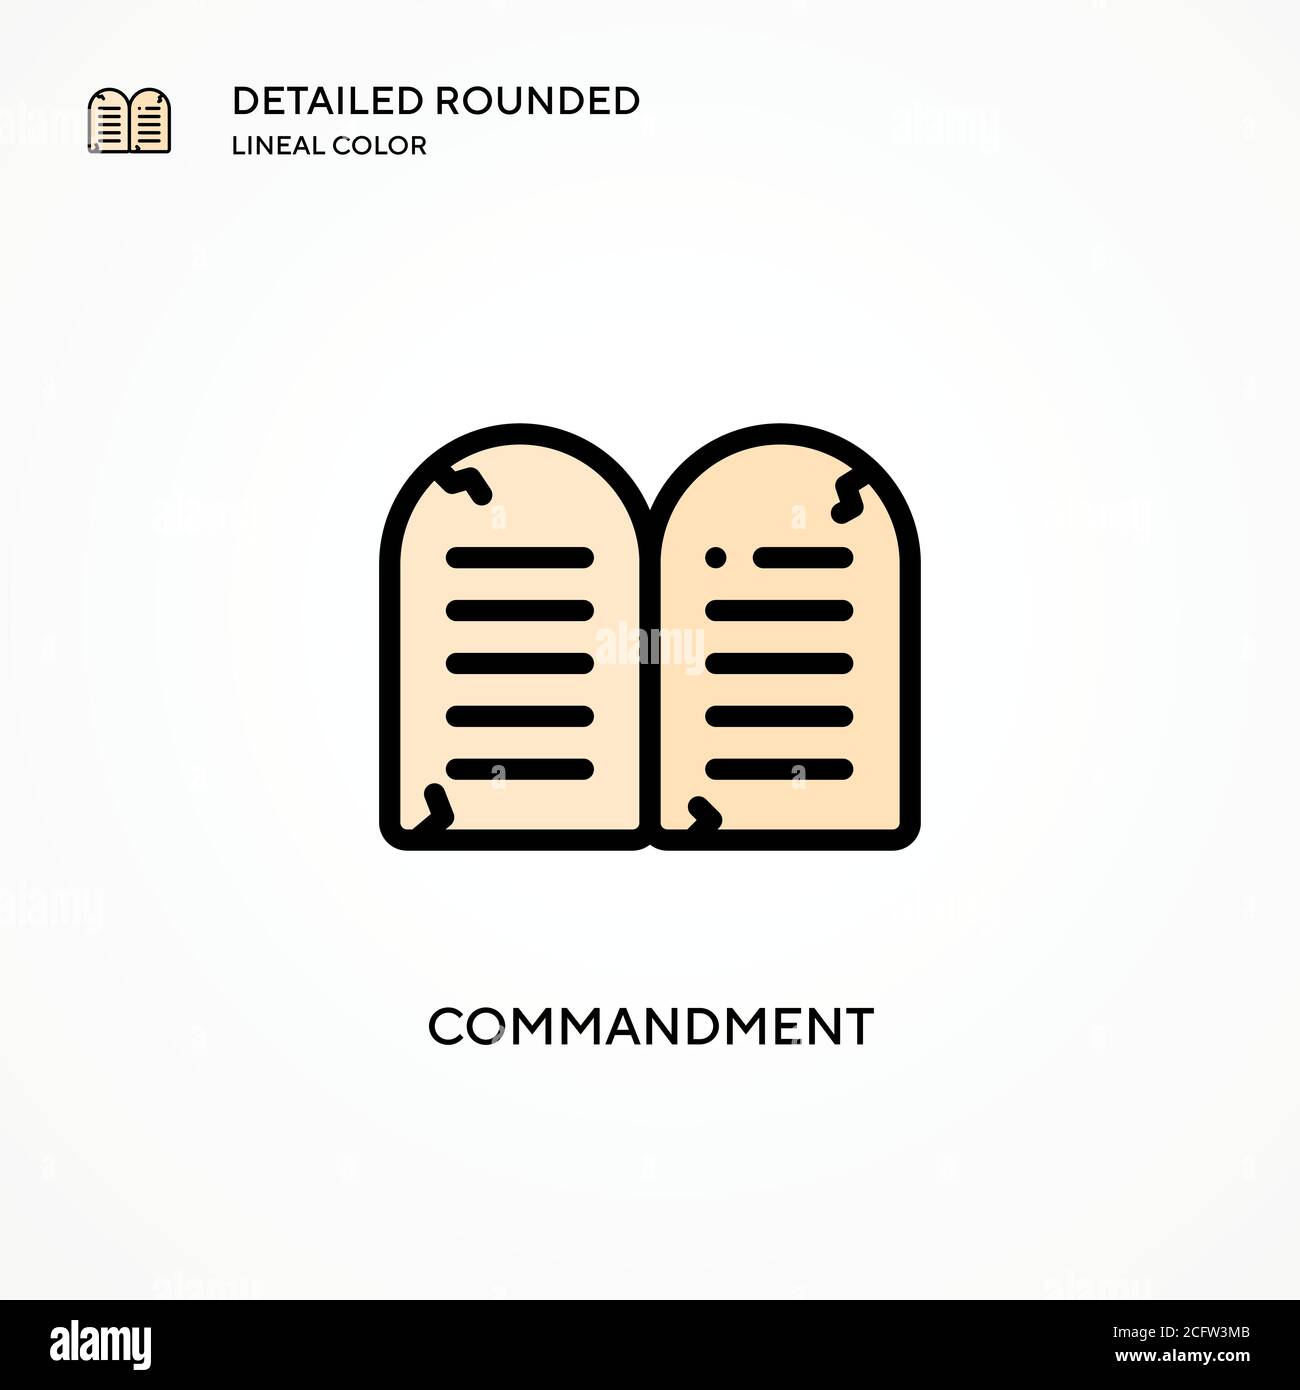 Commandment vector icon. Modern vector illustration concepts. Easy to edit and customize. Stock Vector